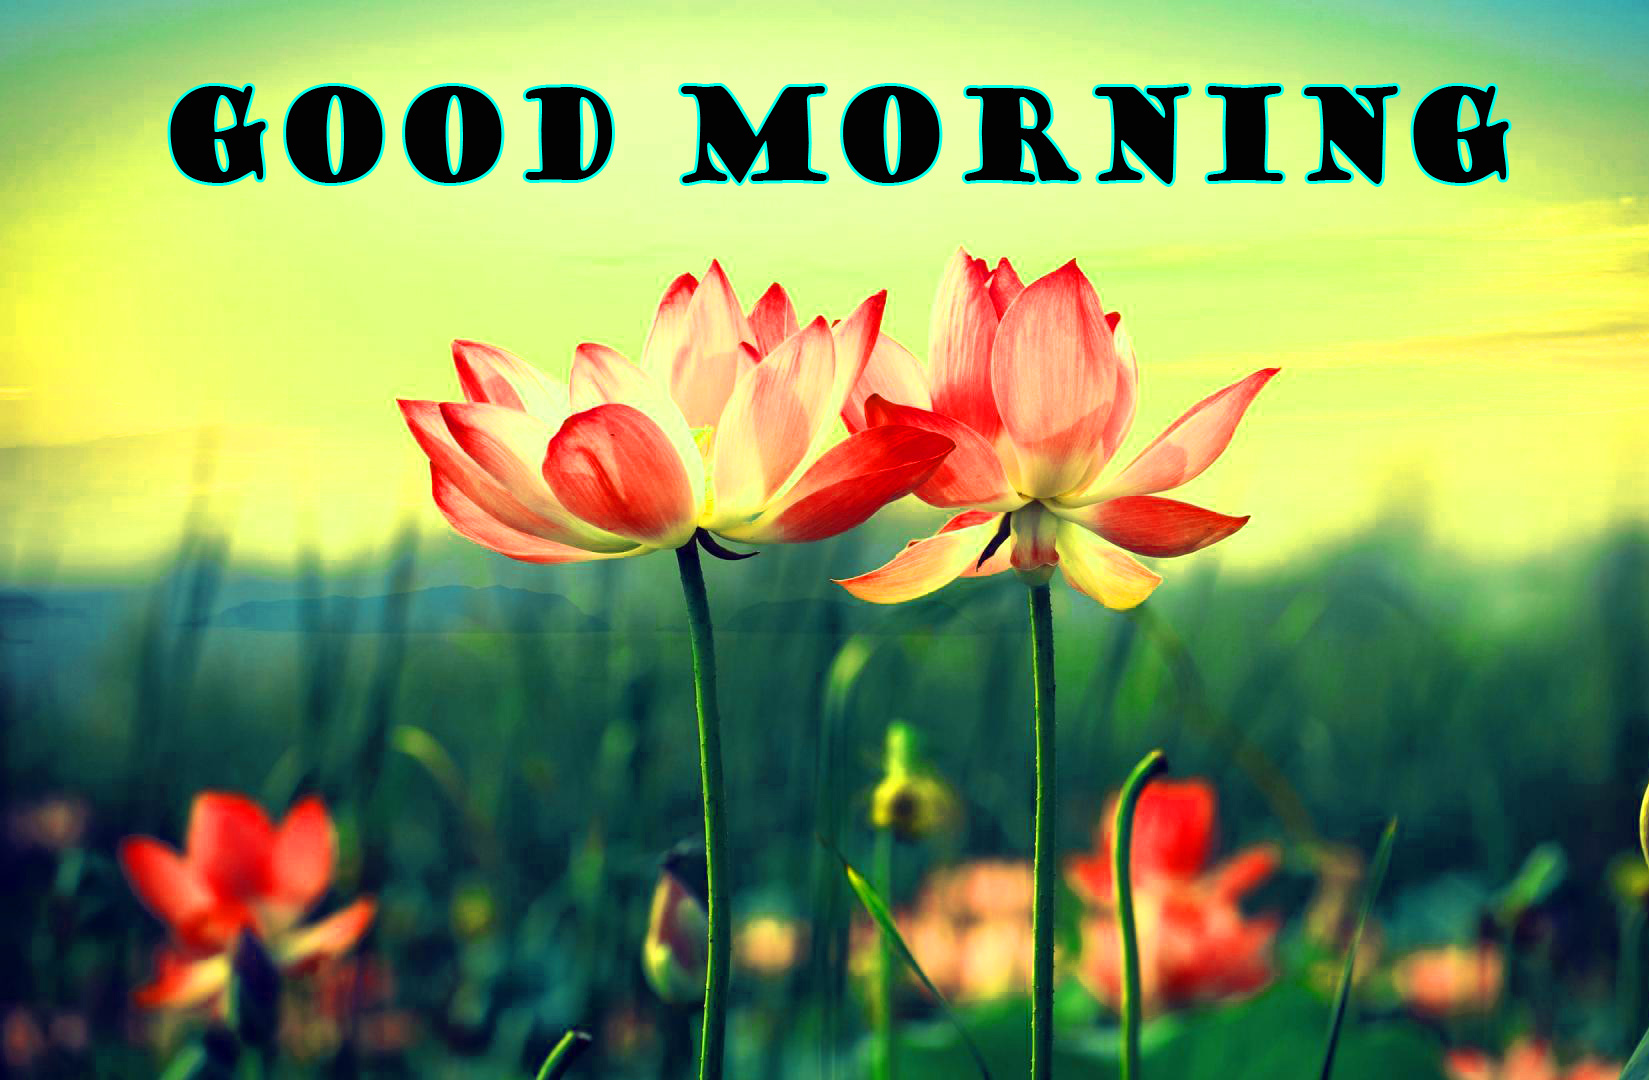 Good Morning Flowers Images Photo Wallpaper Download